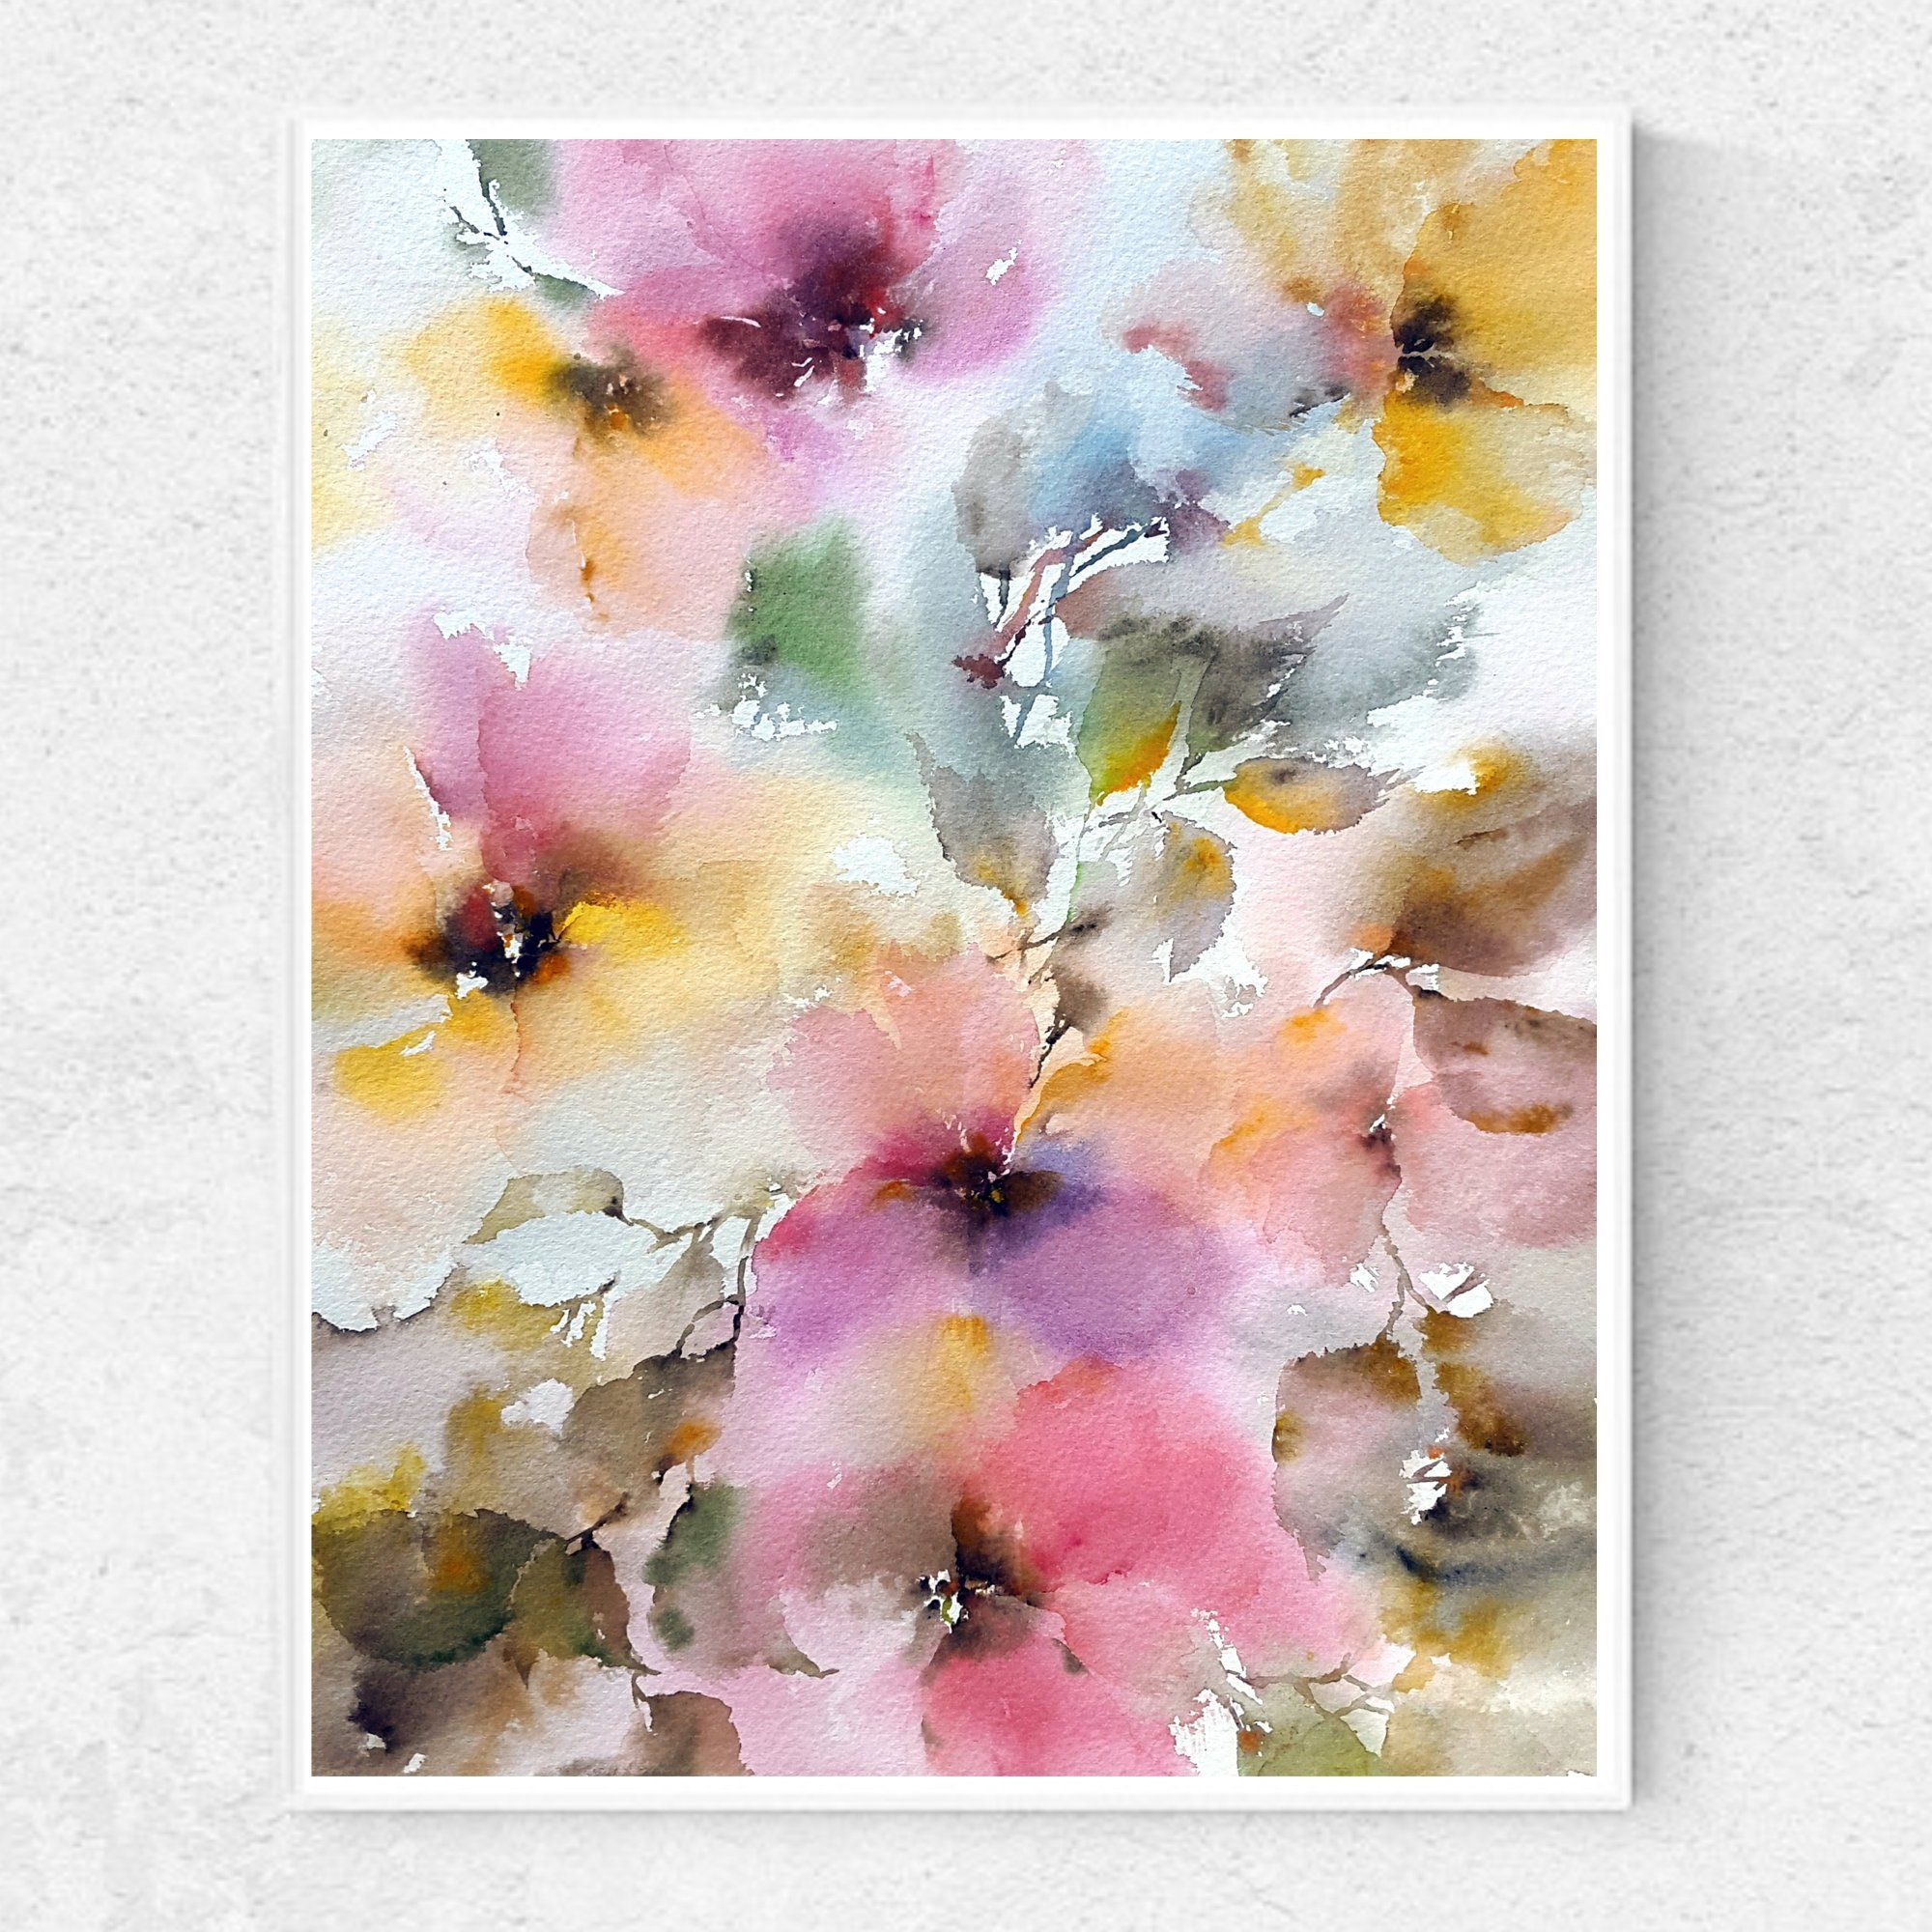 Untitled Abstract Watercolor Art Abstract Watercolor Art